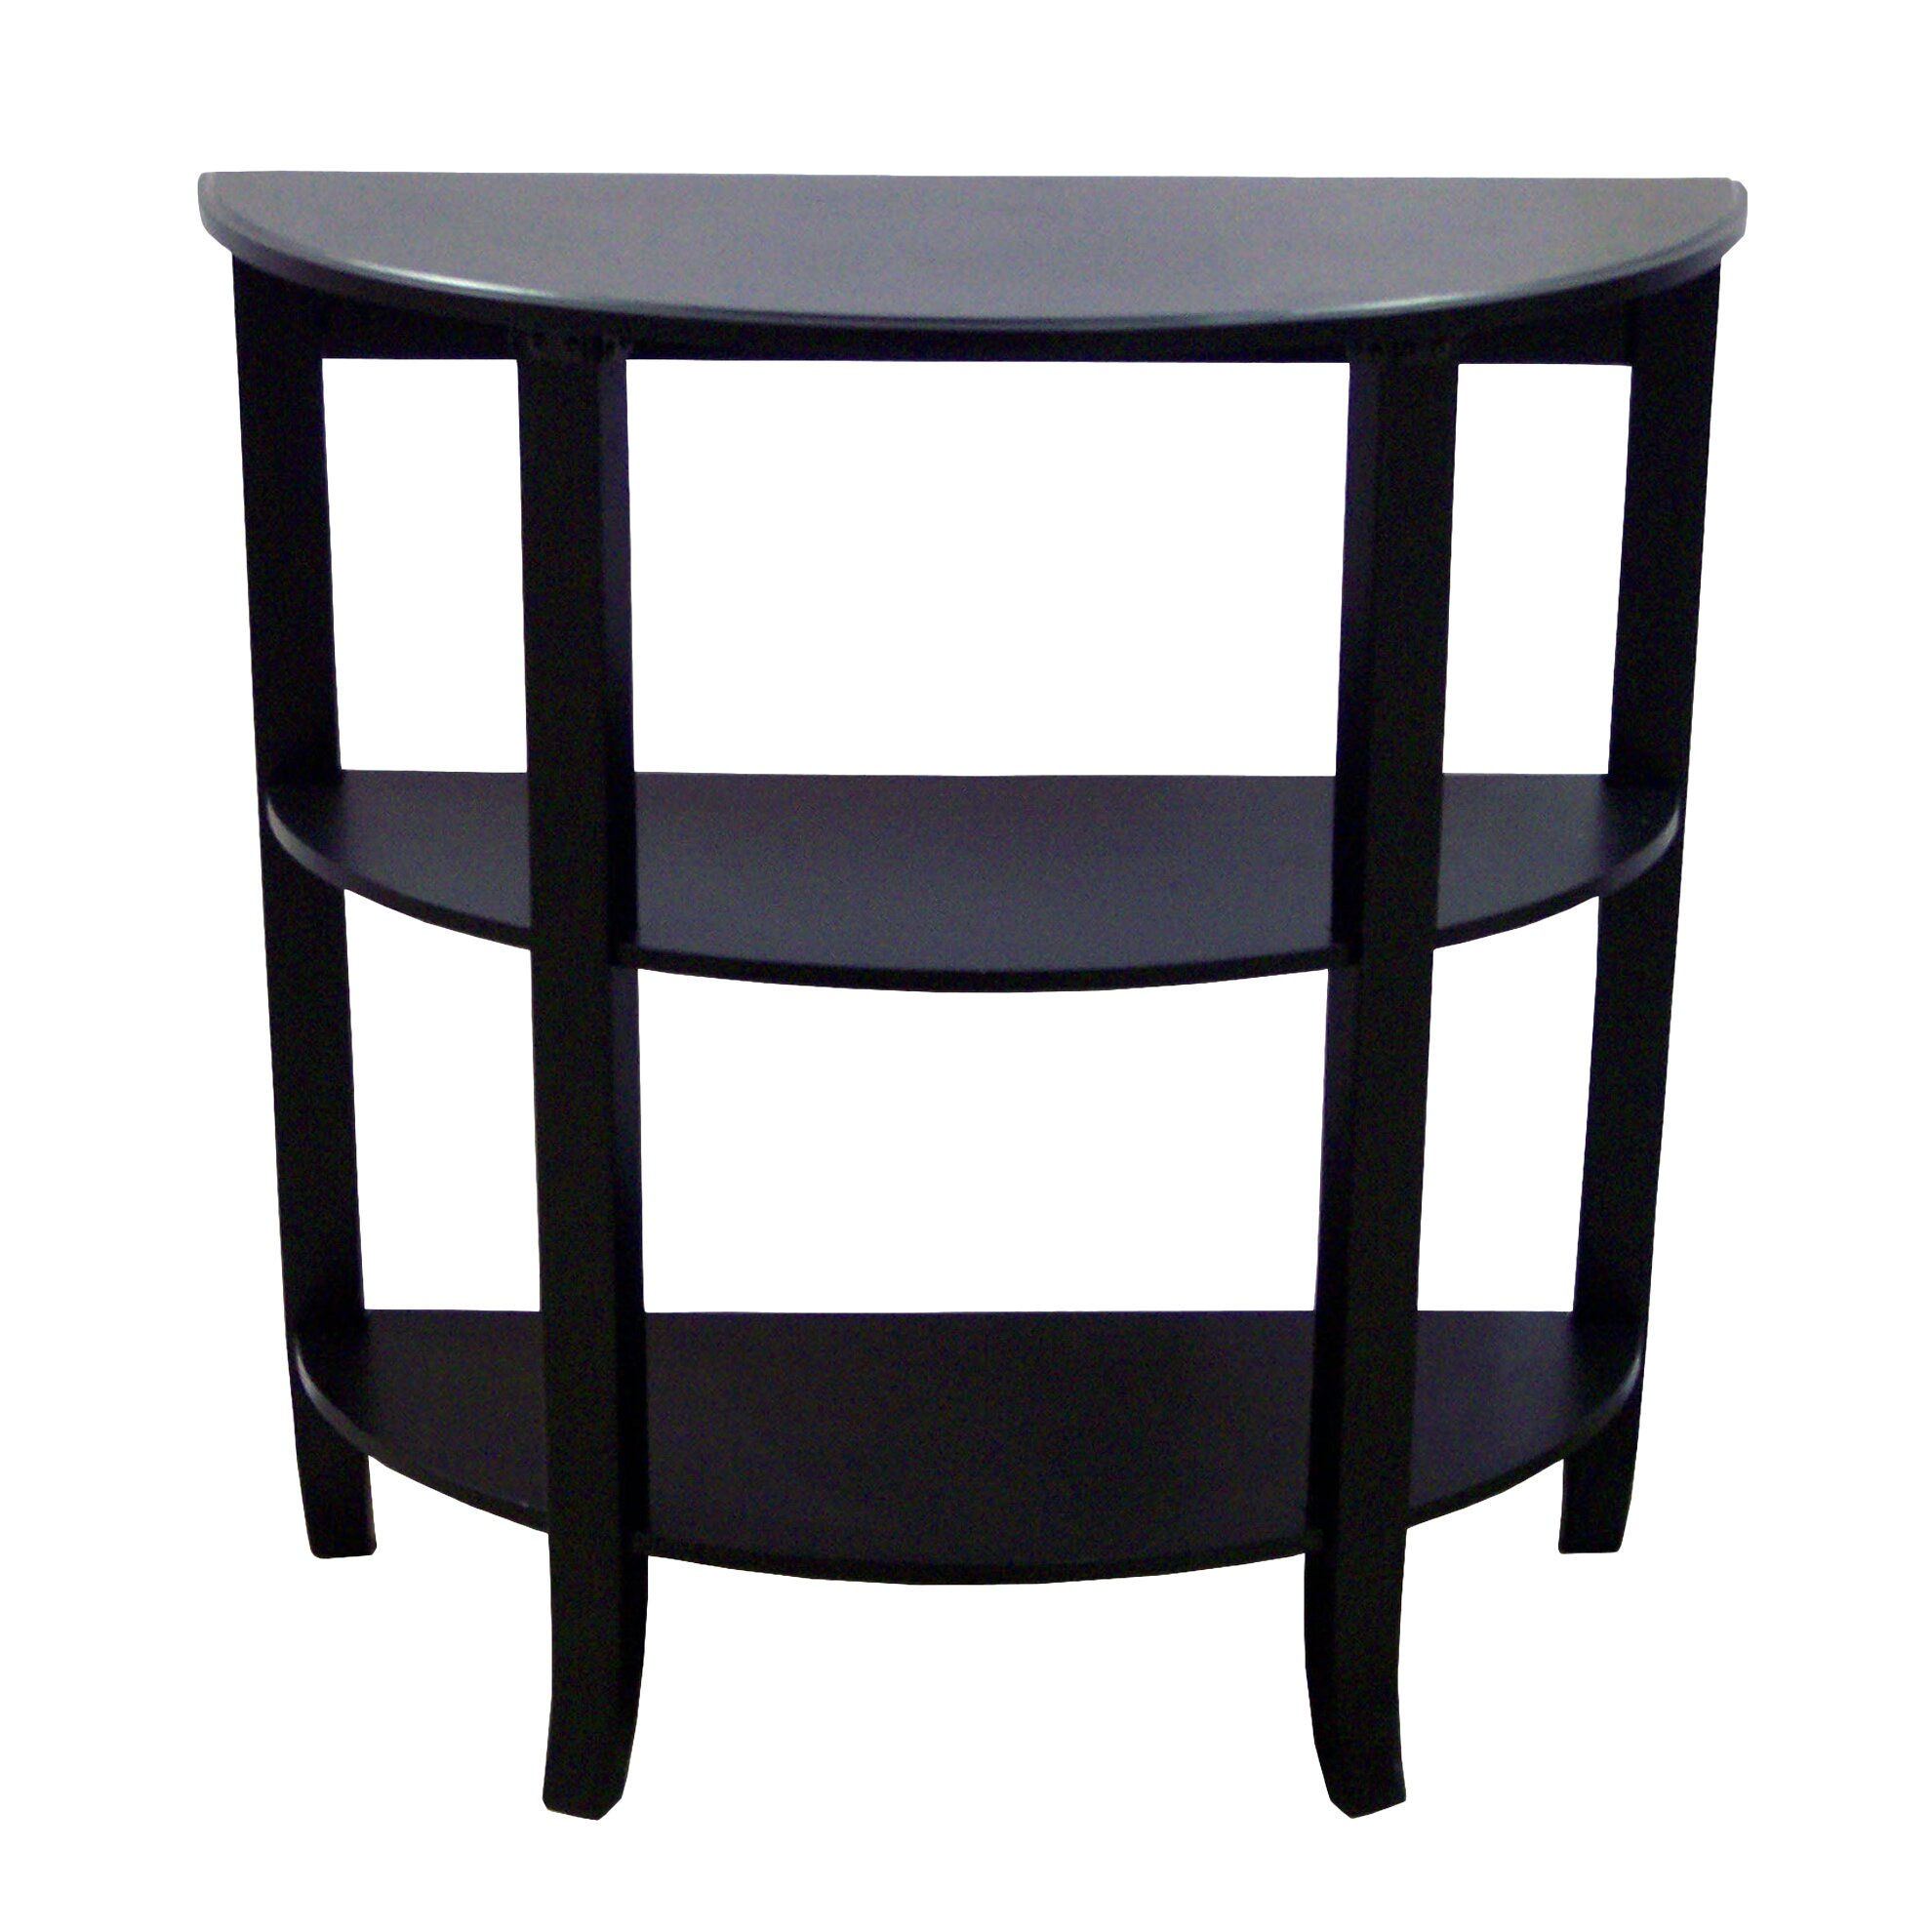 Foyer Console Reviews : Tms london hall console table reviews wayfair